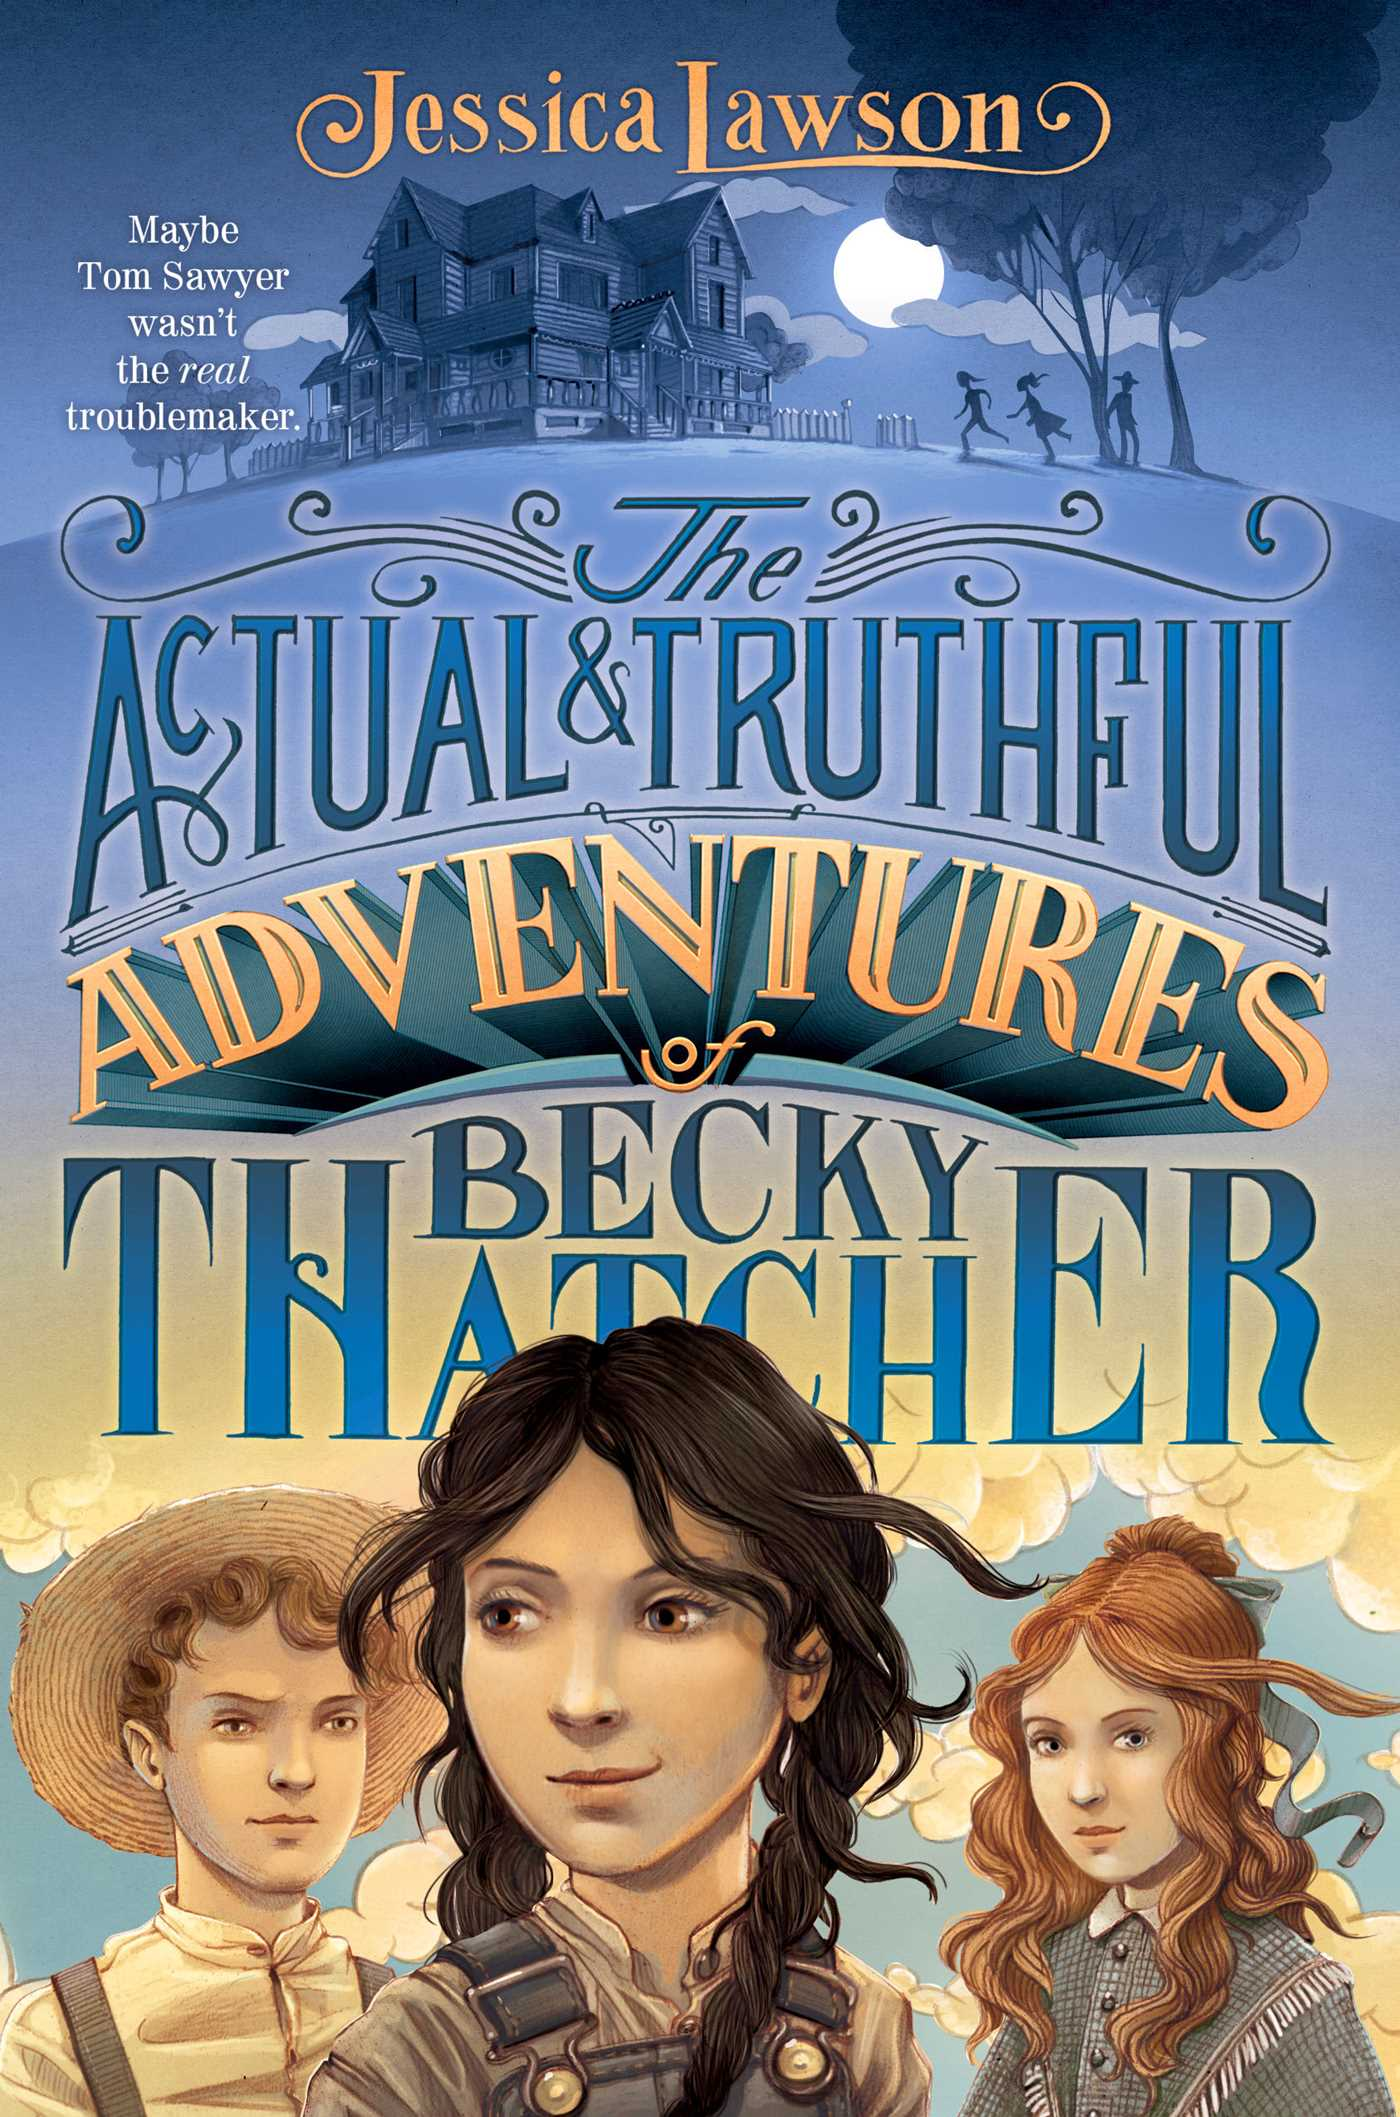 Actual truthful adventures of becky thatcher 9781481401500 hr